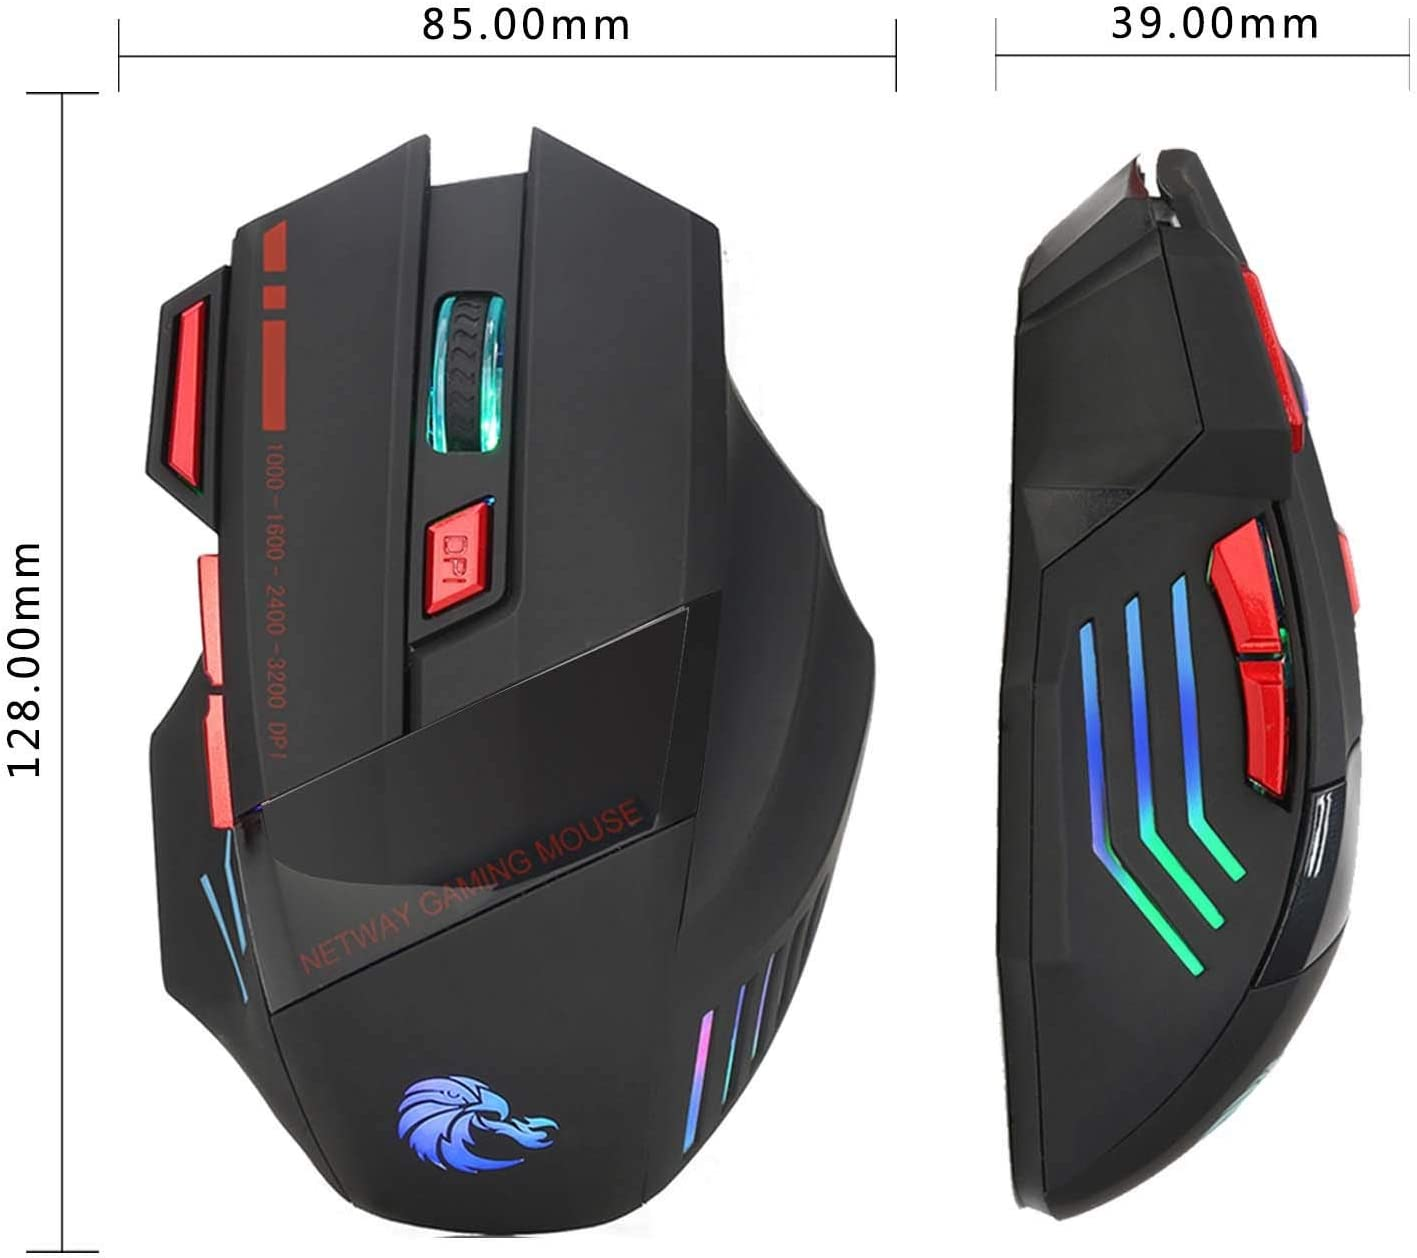 LUGEUK Colorful Luminous Gaming Mouse Wired Mouse 3200dpi Firepower Key Adjustable DPI Selection